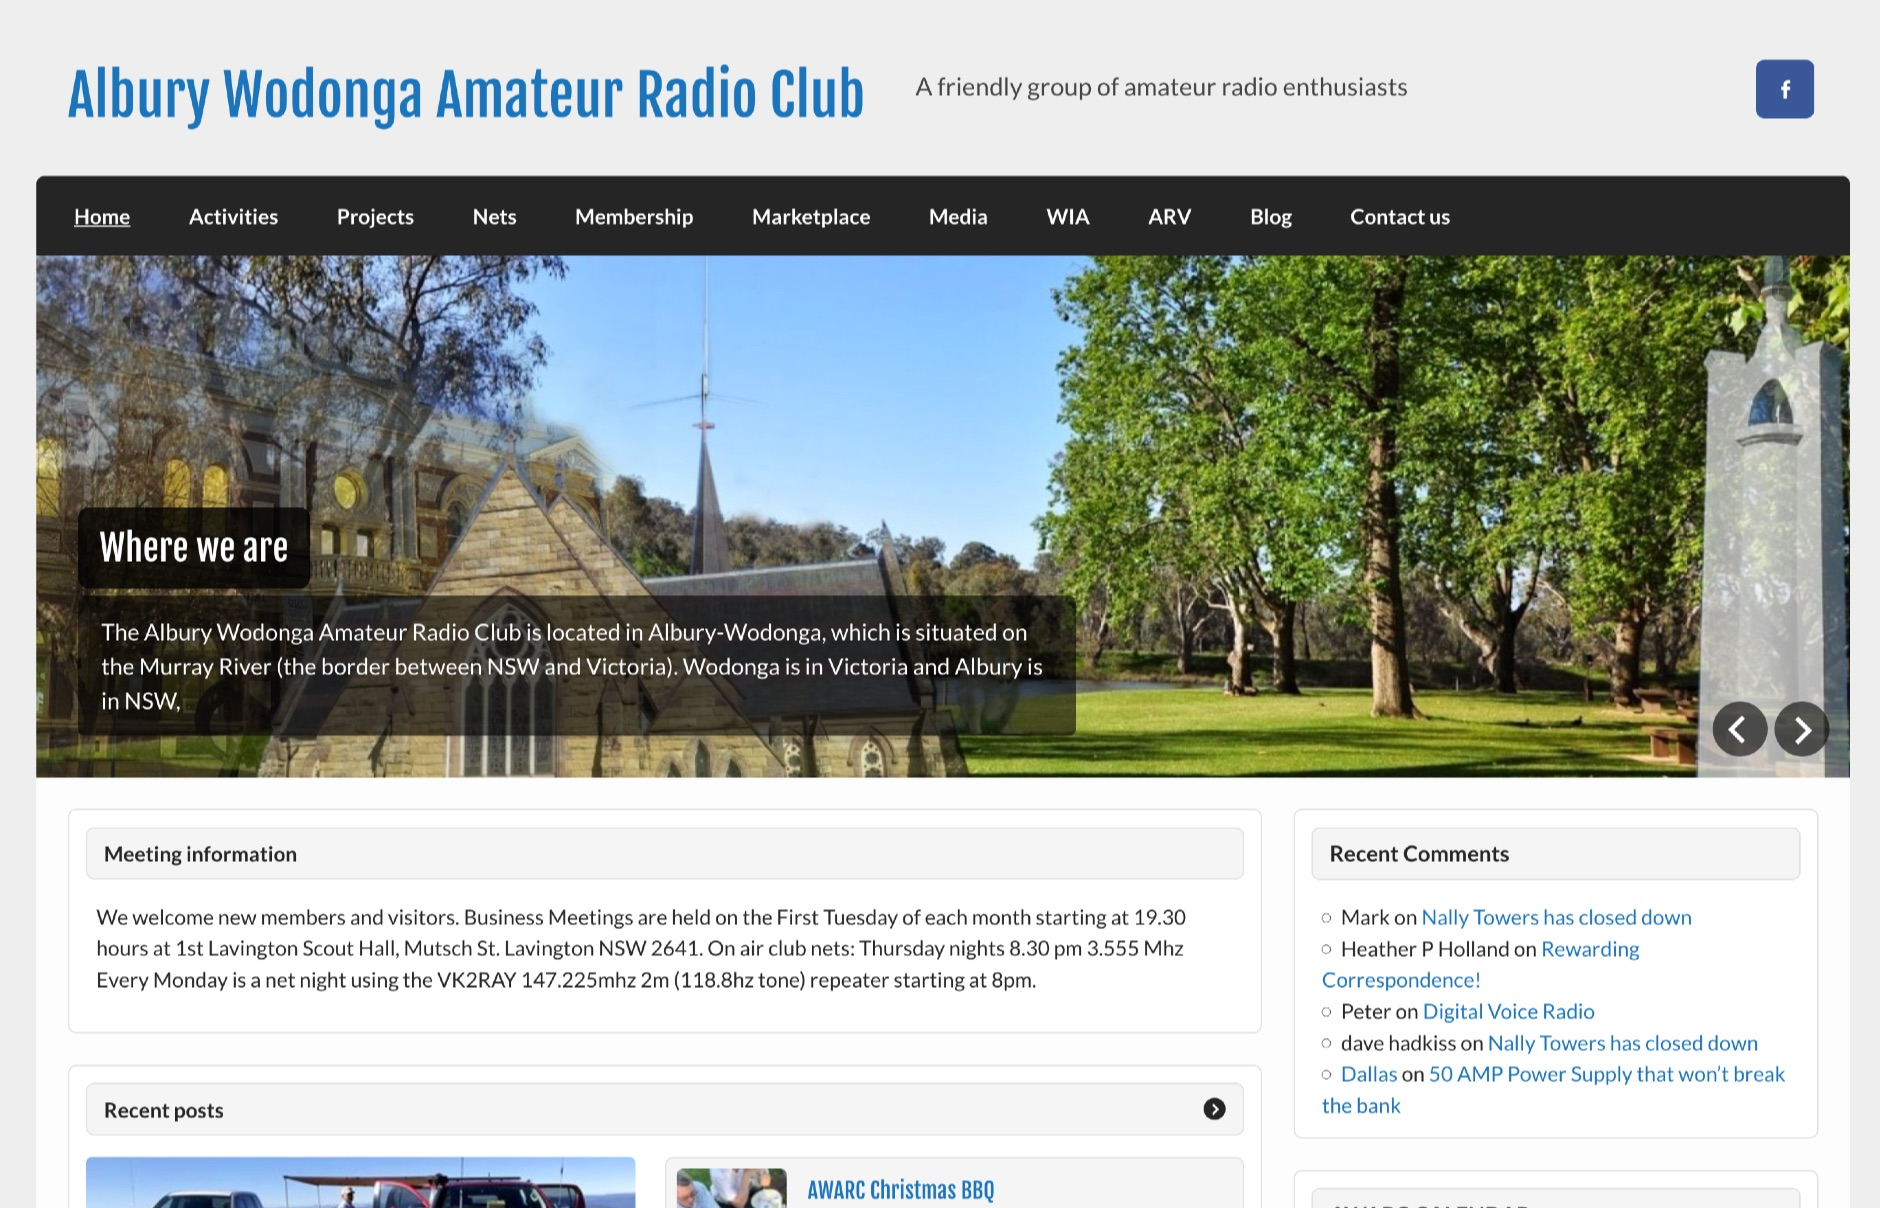 Albury Wodonga Amateur Radio Club